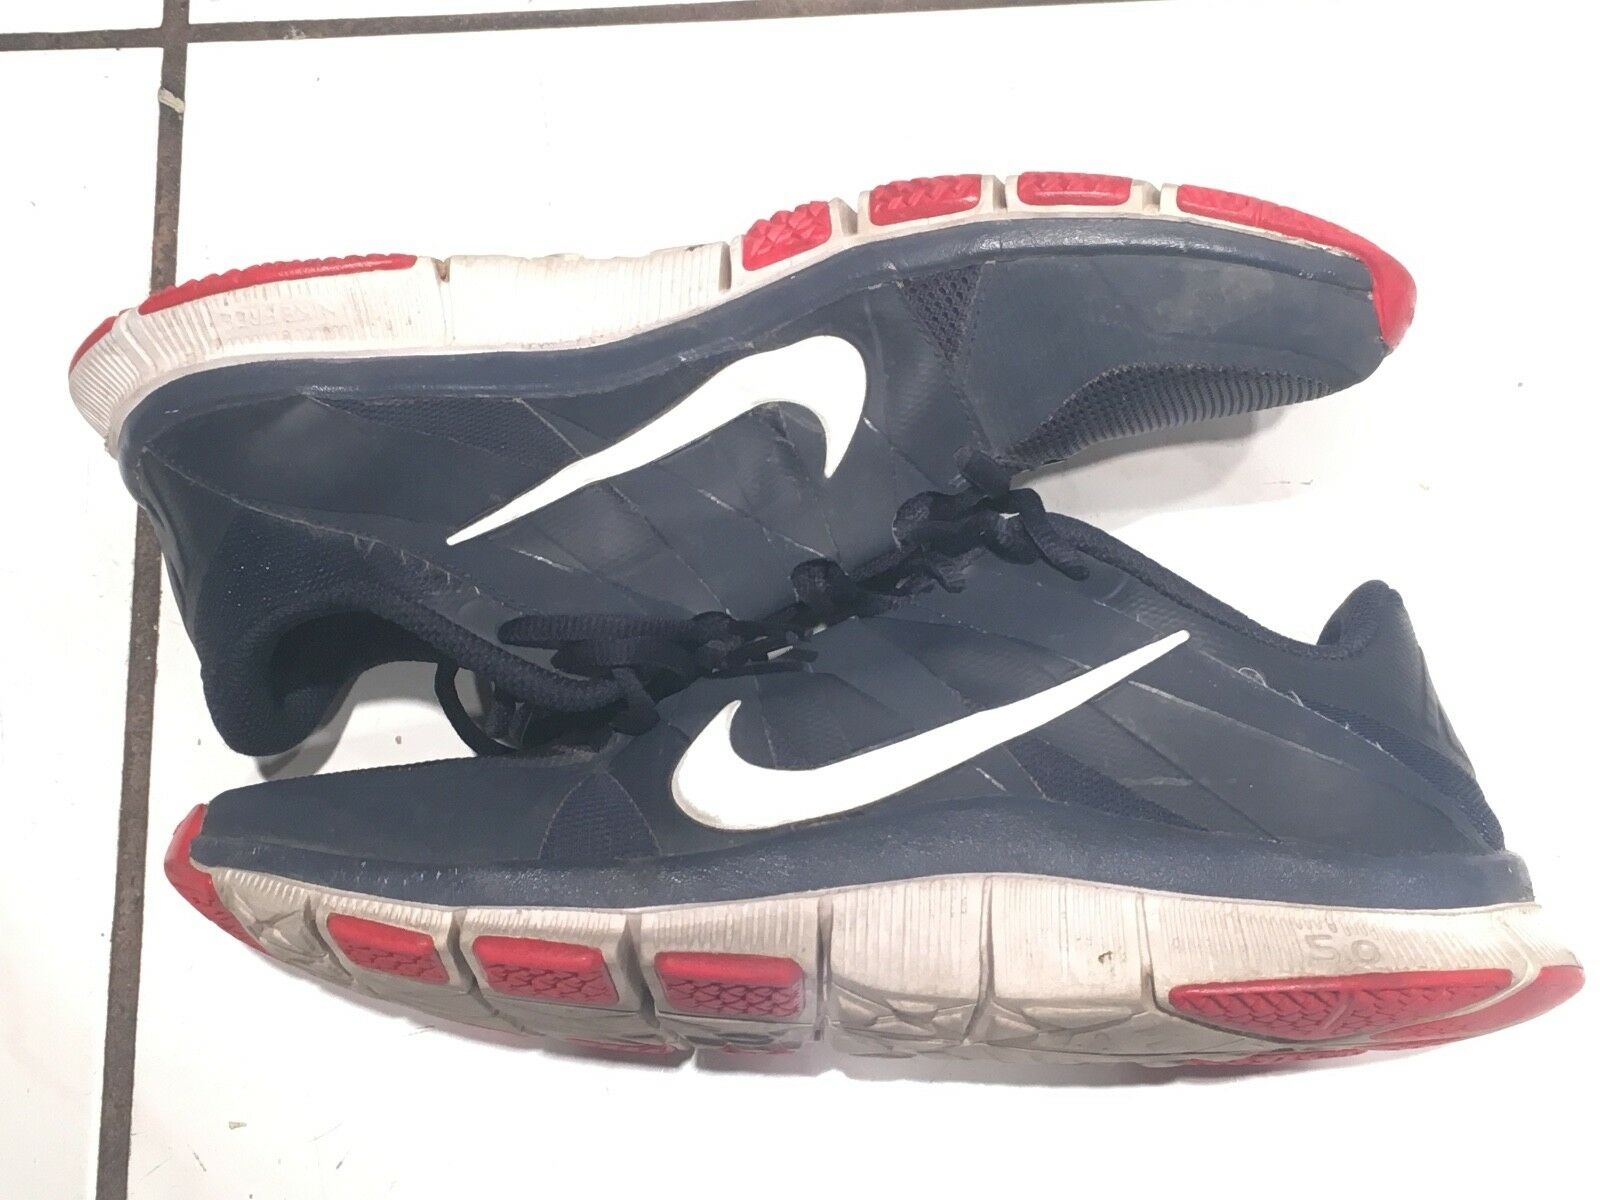 Nike Mens Free Run Trainer 5.0 Navy Blue, Red, and White 10 Price reduction The latest discount shoes for men and women